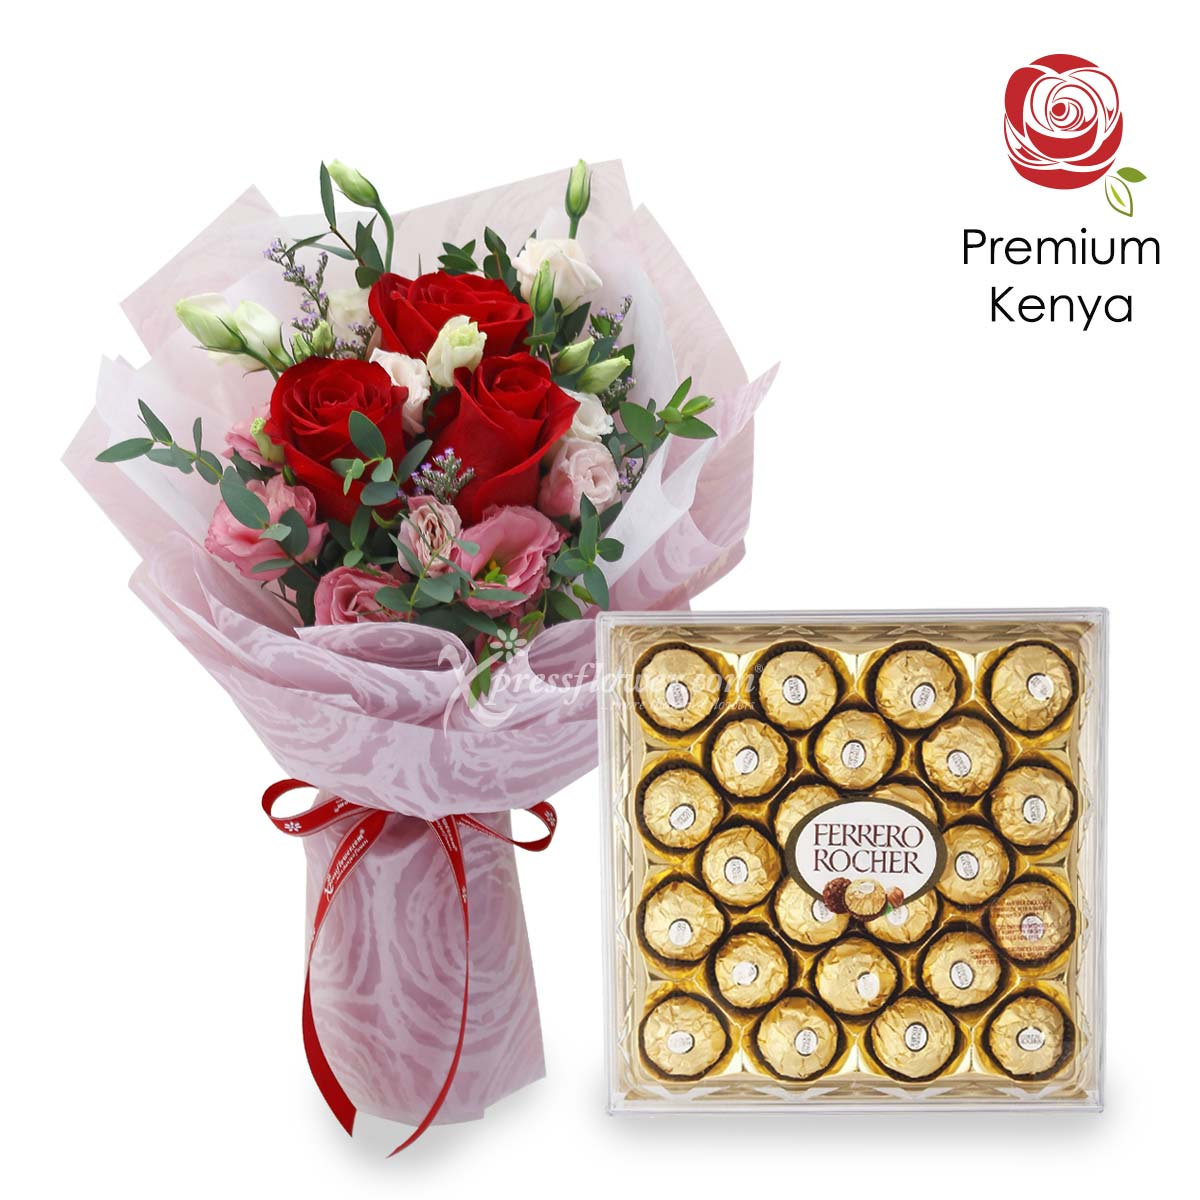 All Day Sweetness (3 Kenya Red Roses with 24 Ferrero Rocher Chocolate)